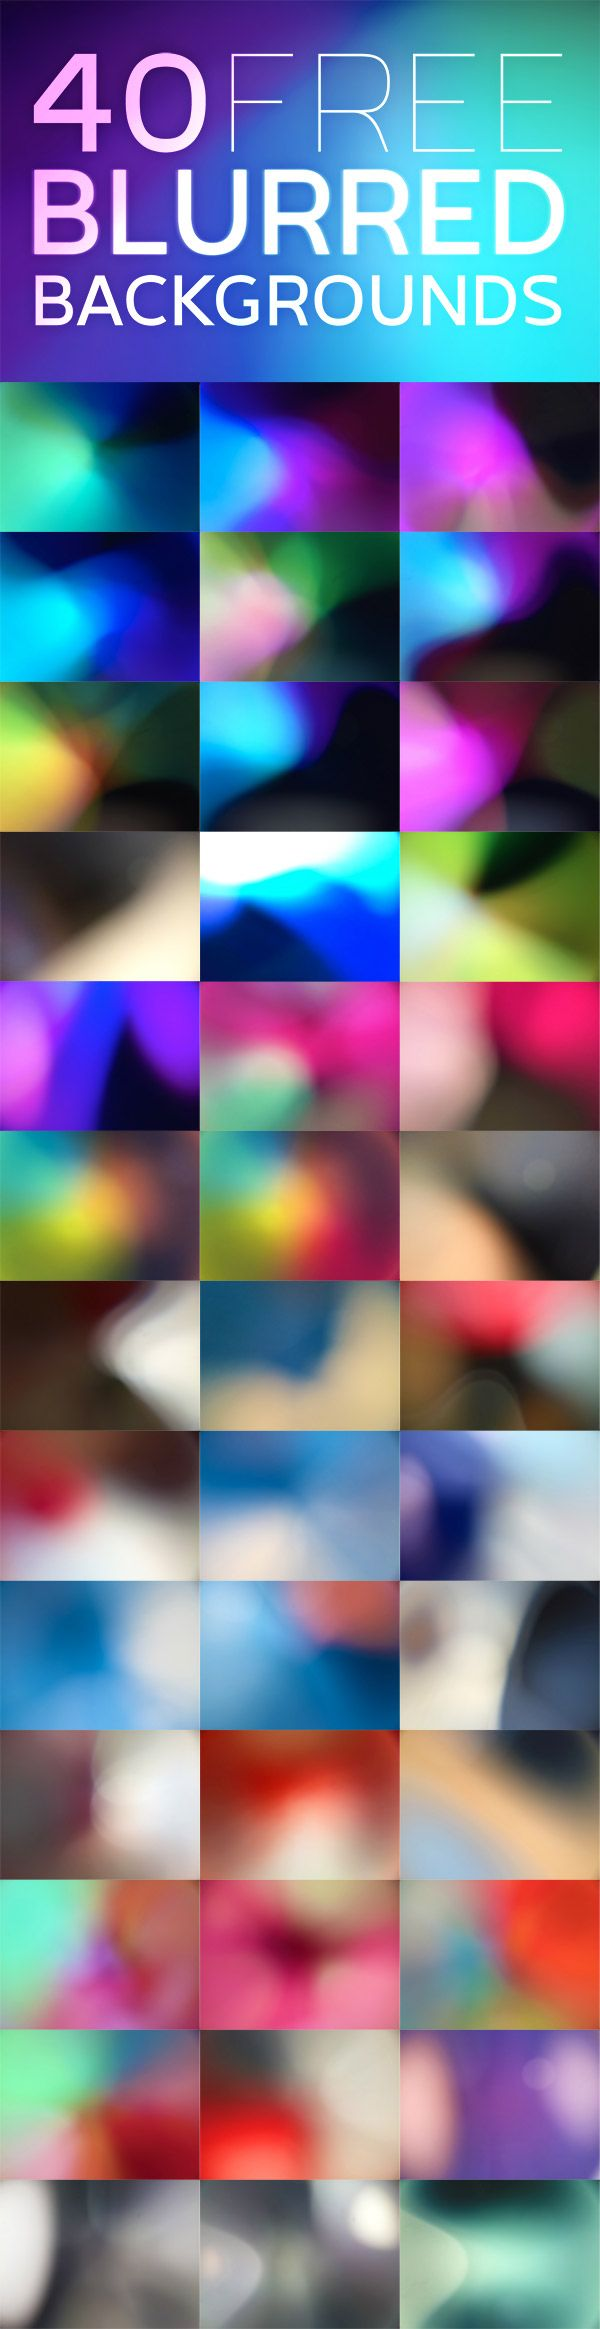 40 Free Blurred Backgrounds AND instructions for use with Photoshop